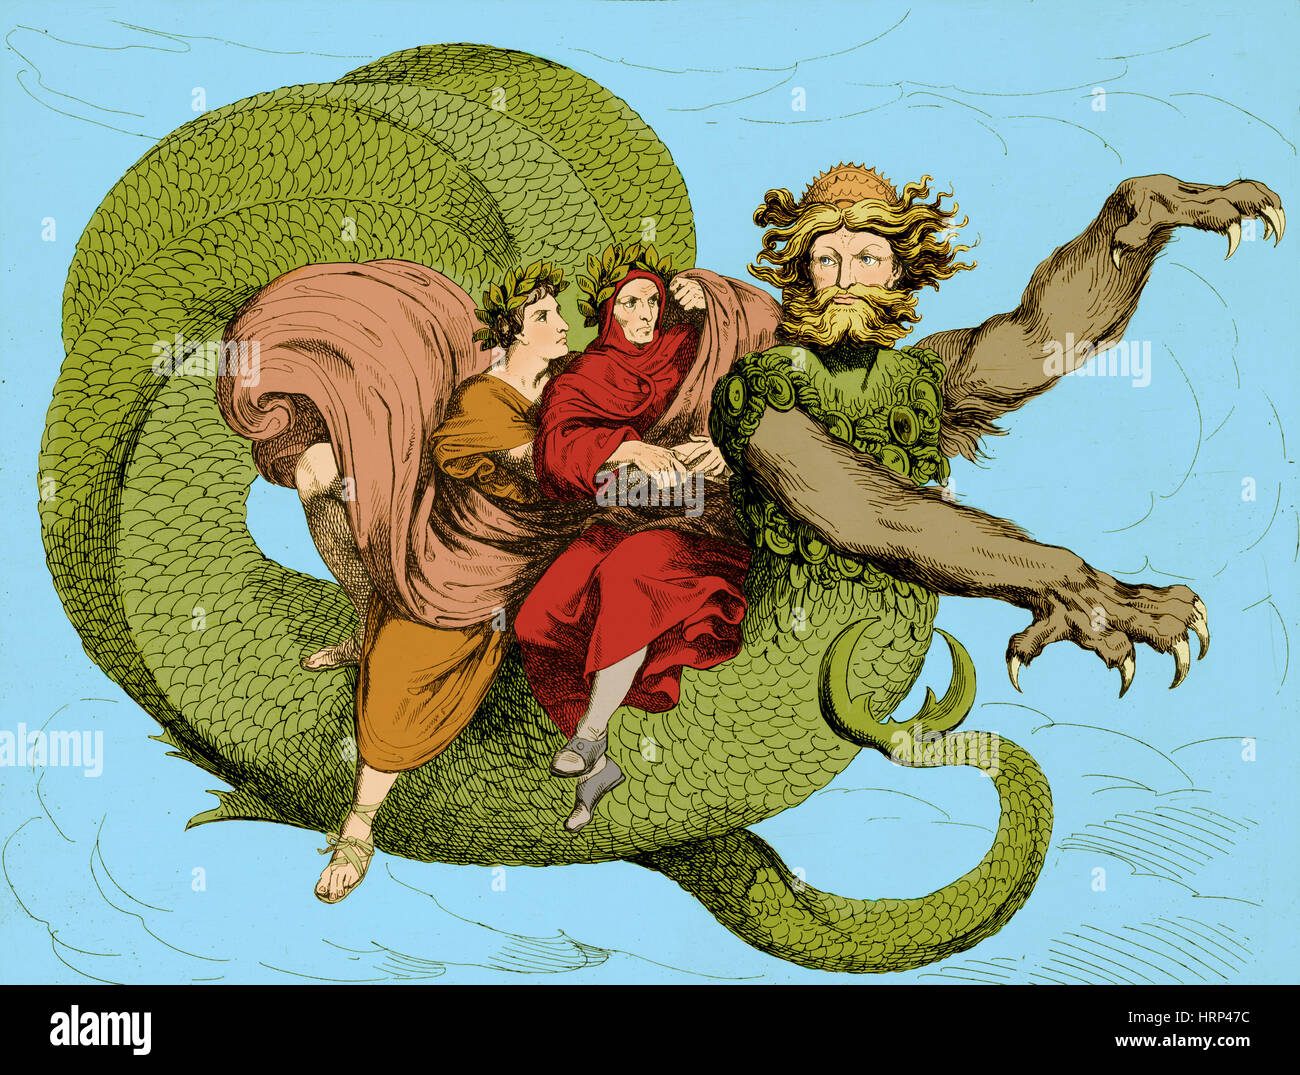 Virgil and Dante Riding Geryon, Divine Comedy - Stock Image